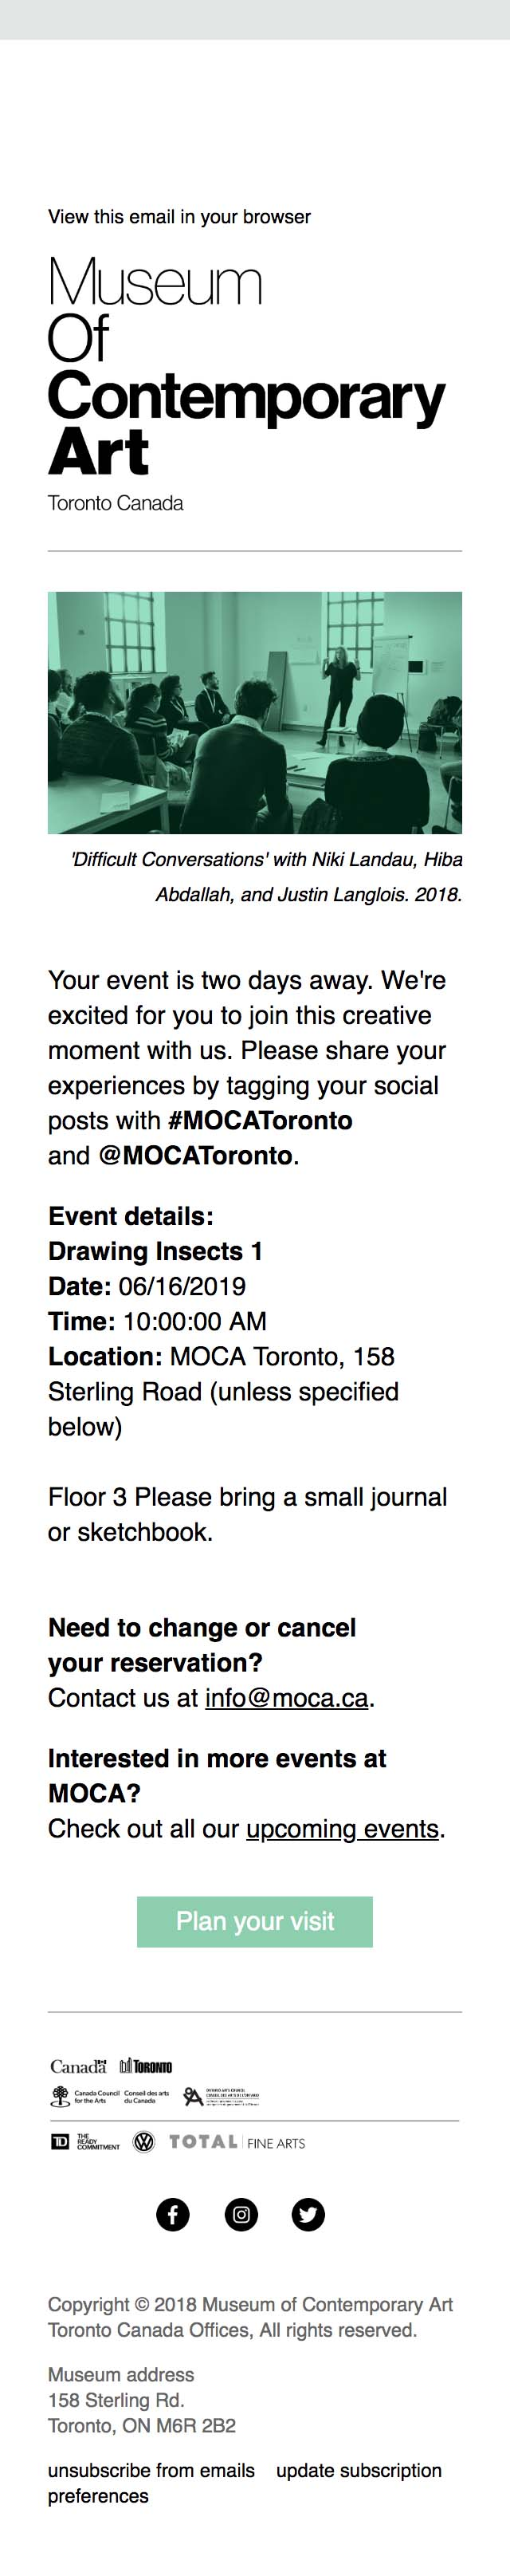 Your event at MOCA is coming up - mobile view